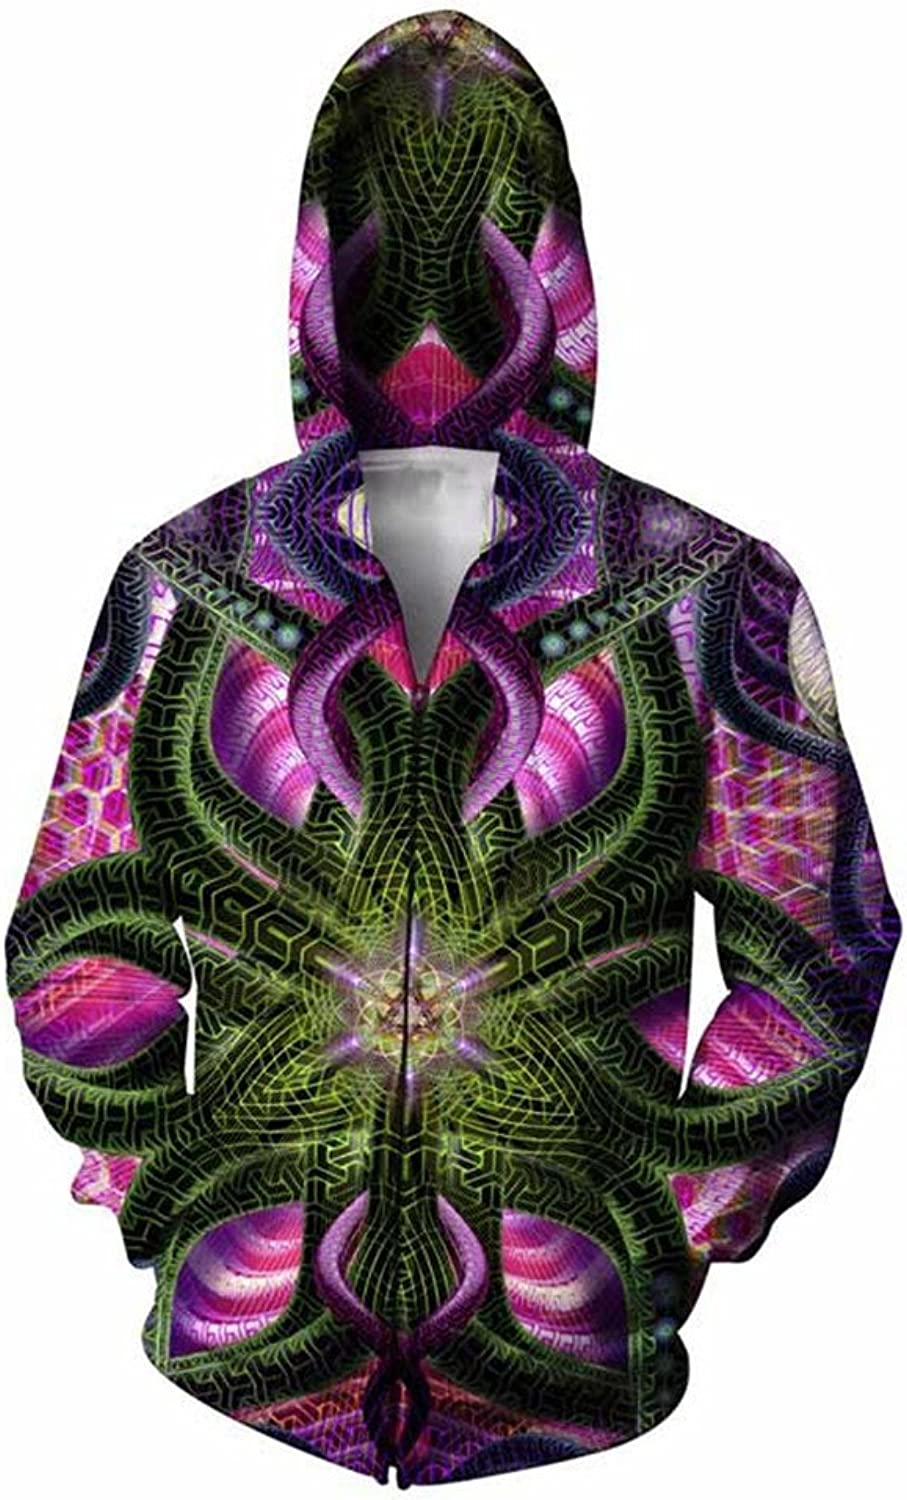 KovLee Double Sided Hoodie psychedelic colorful geometric shapes 3d Print Outfits Women Men Hoodies Zipper Sweatshirts Tops